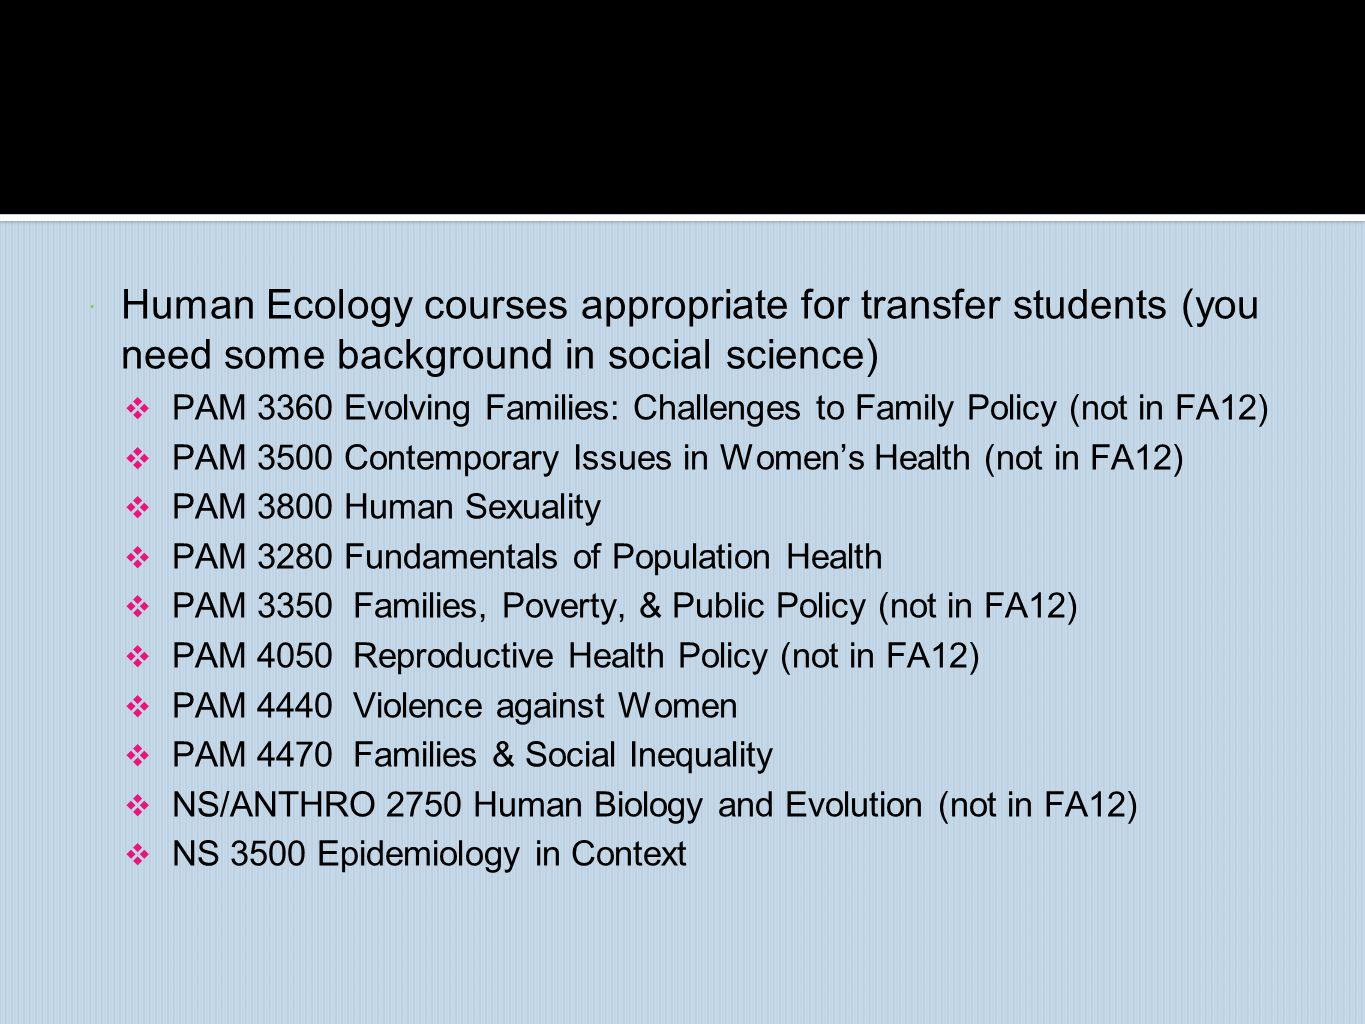 Human Ecology courses appropriate for transfer students (you need some background in social science)